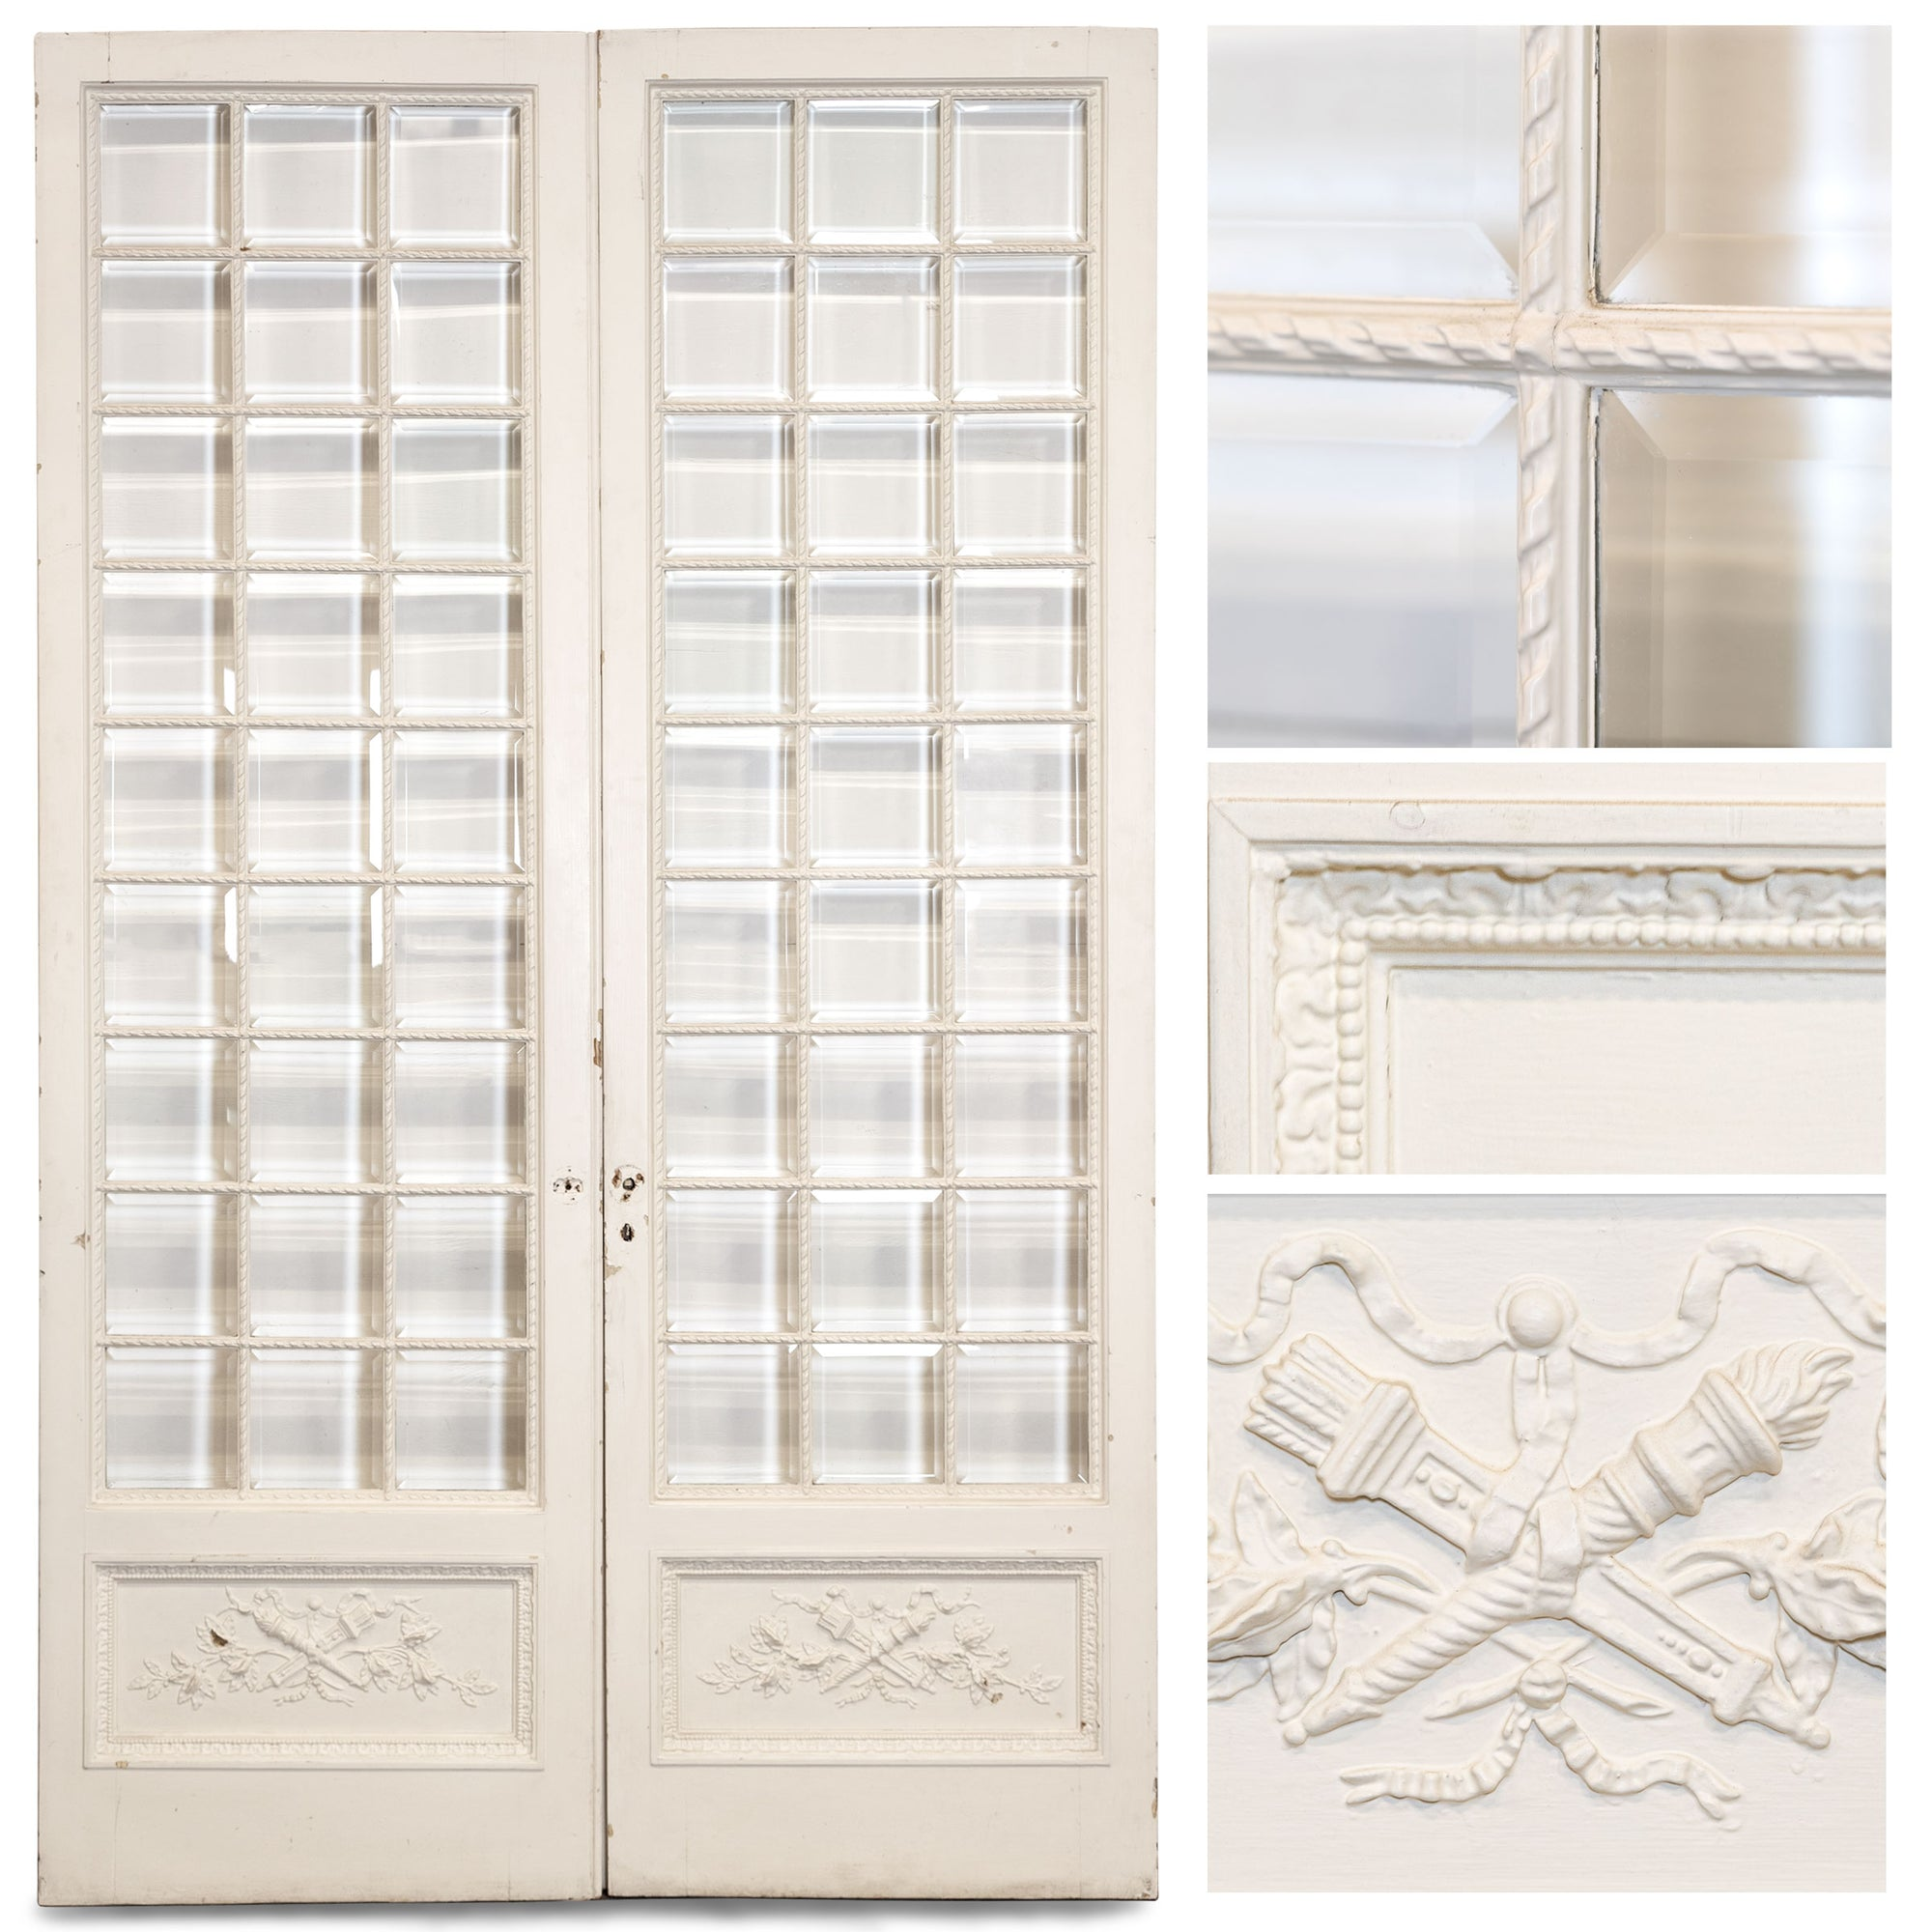 Antique Pine & Gesso Glazed Double Doors (3 pairs available)